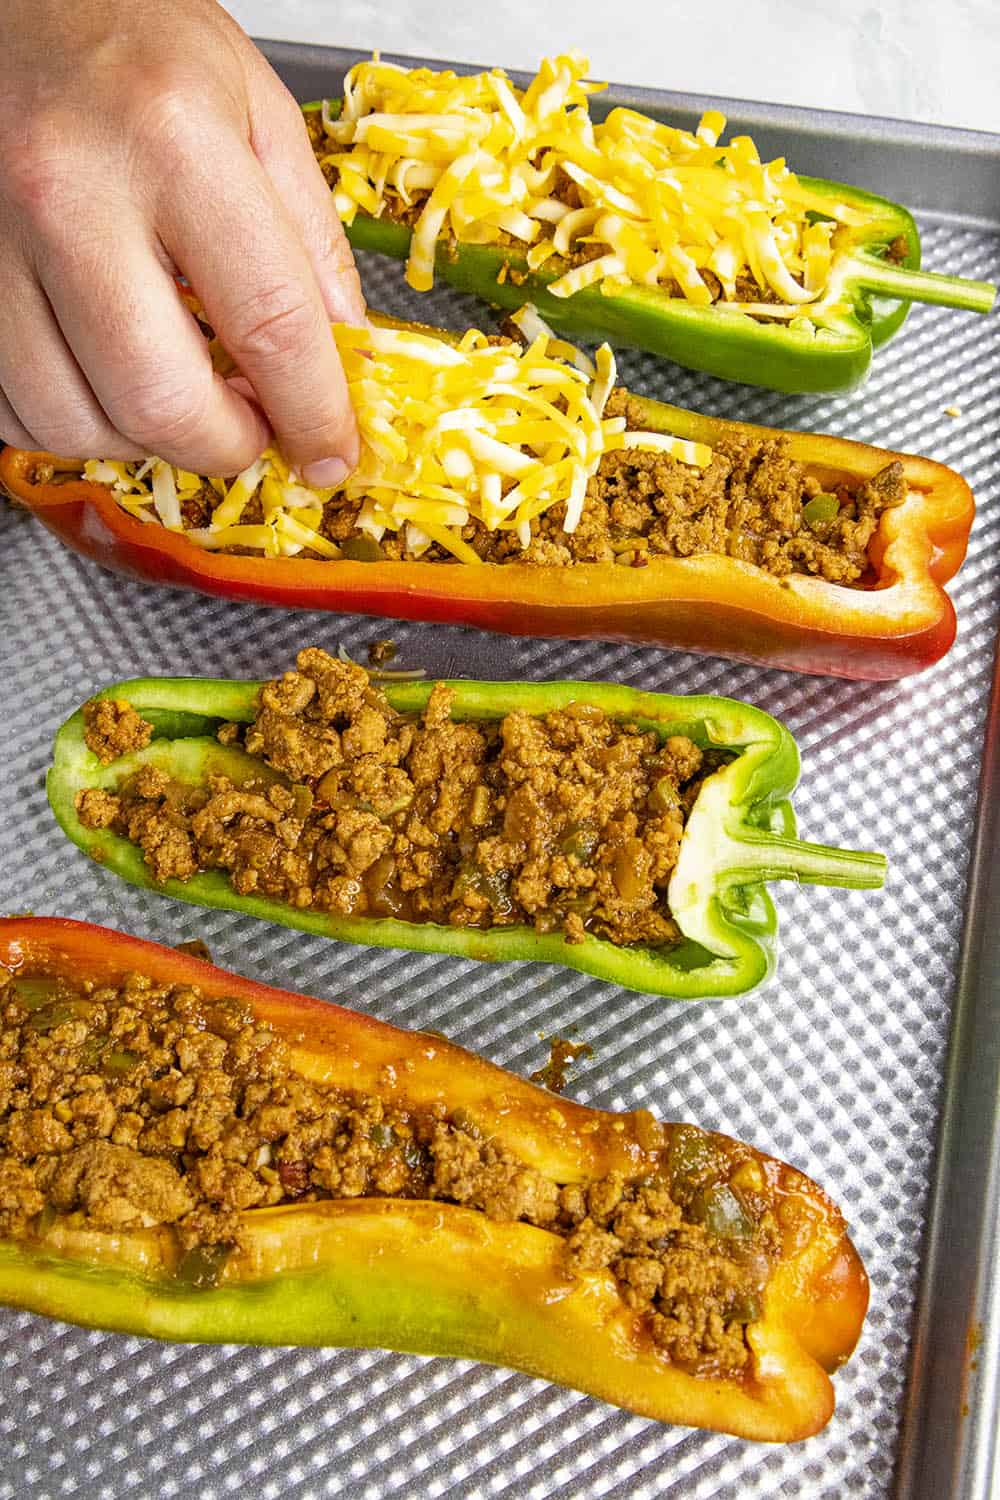 Topping the stuffed peppers with cheese